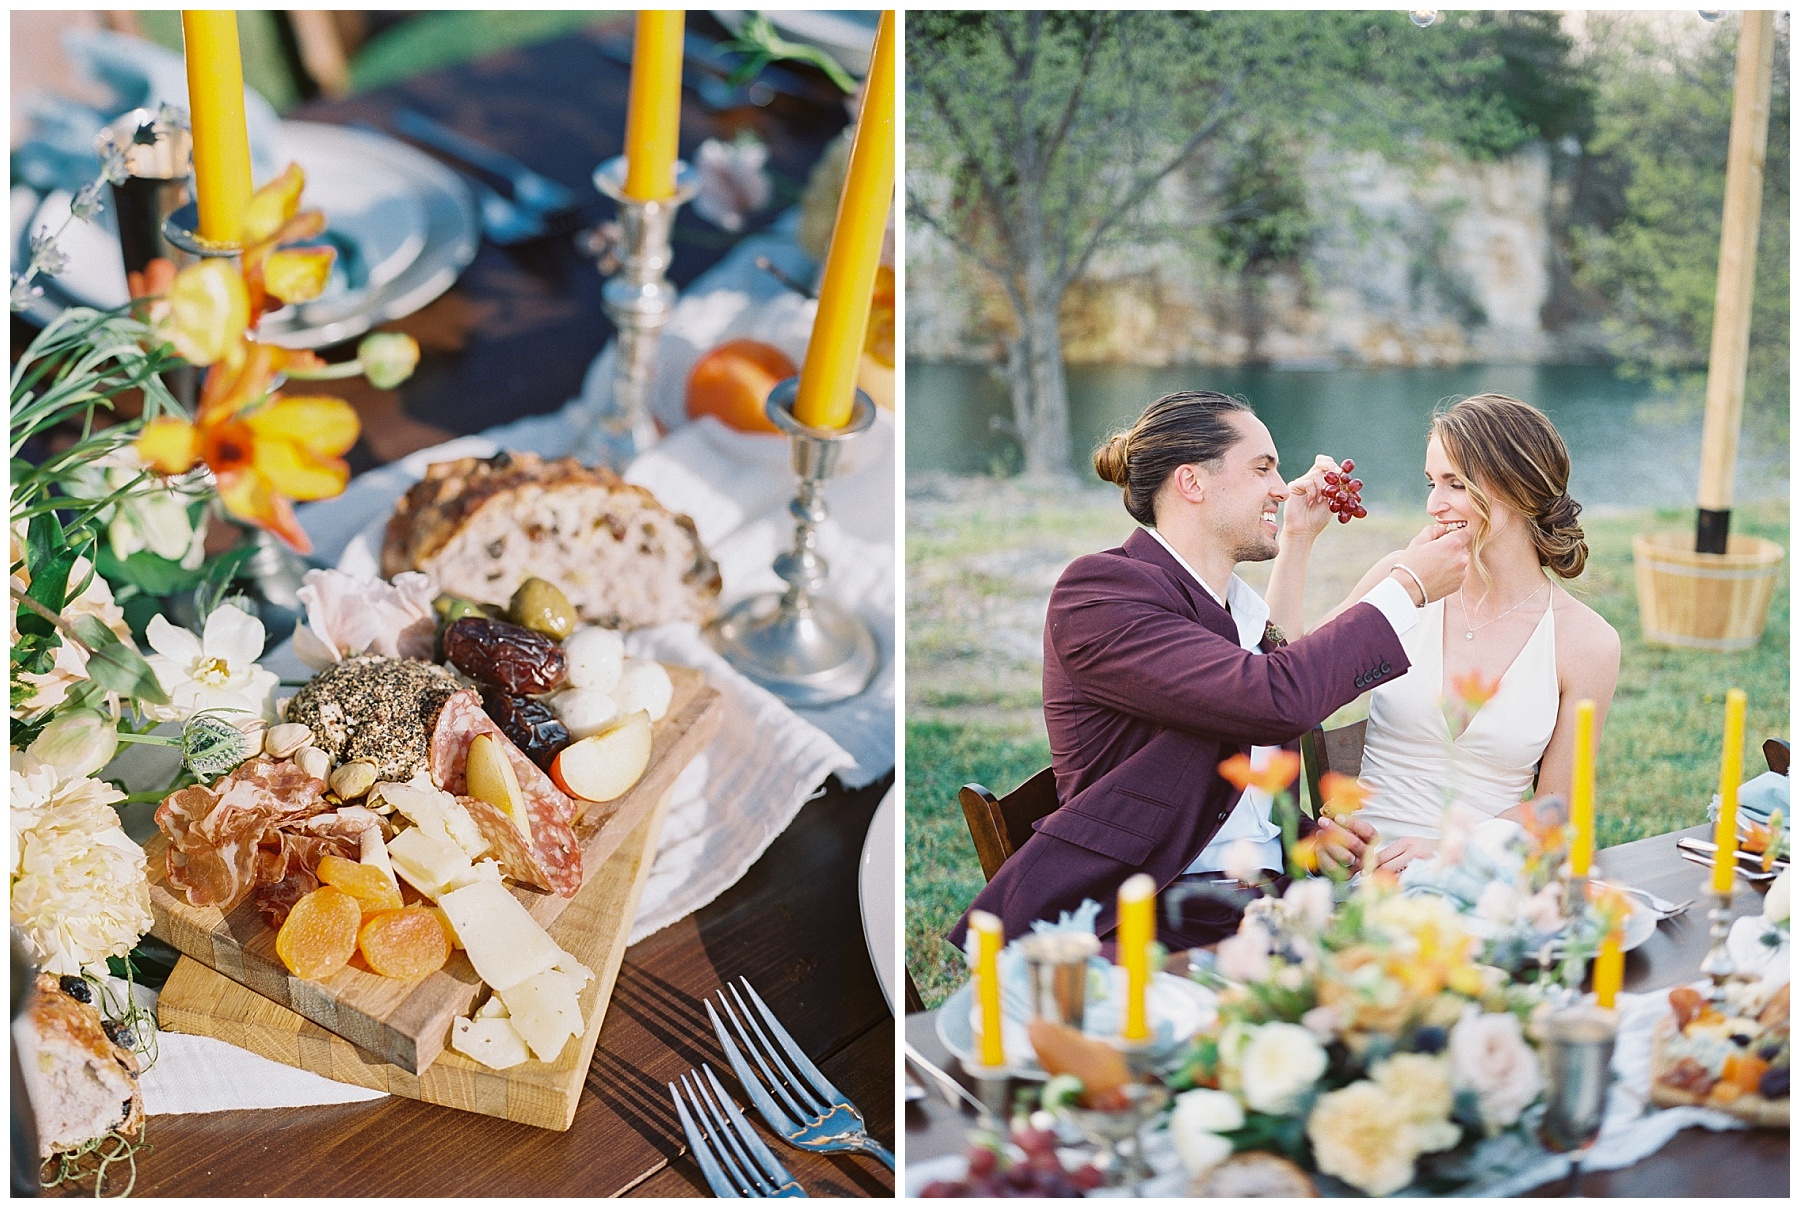 Intimate Spanish and French Inspired Destination Wedding with Lakeside Dinner Party at Dusk at Wildcliff by Kelsi Kliethermes Photography Best Missouri and Maui Wedding Photographer_0043.jpg